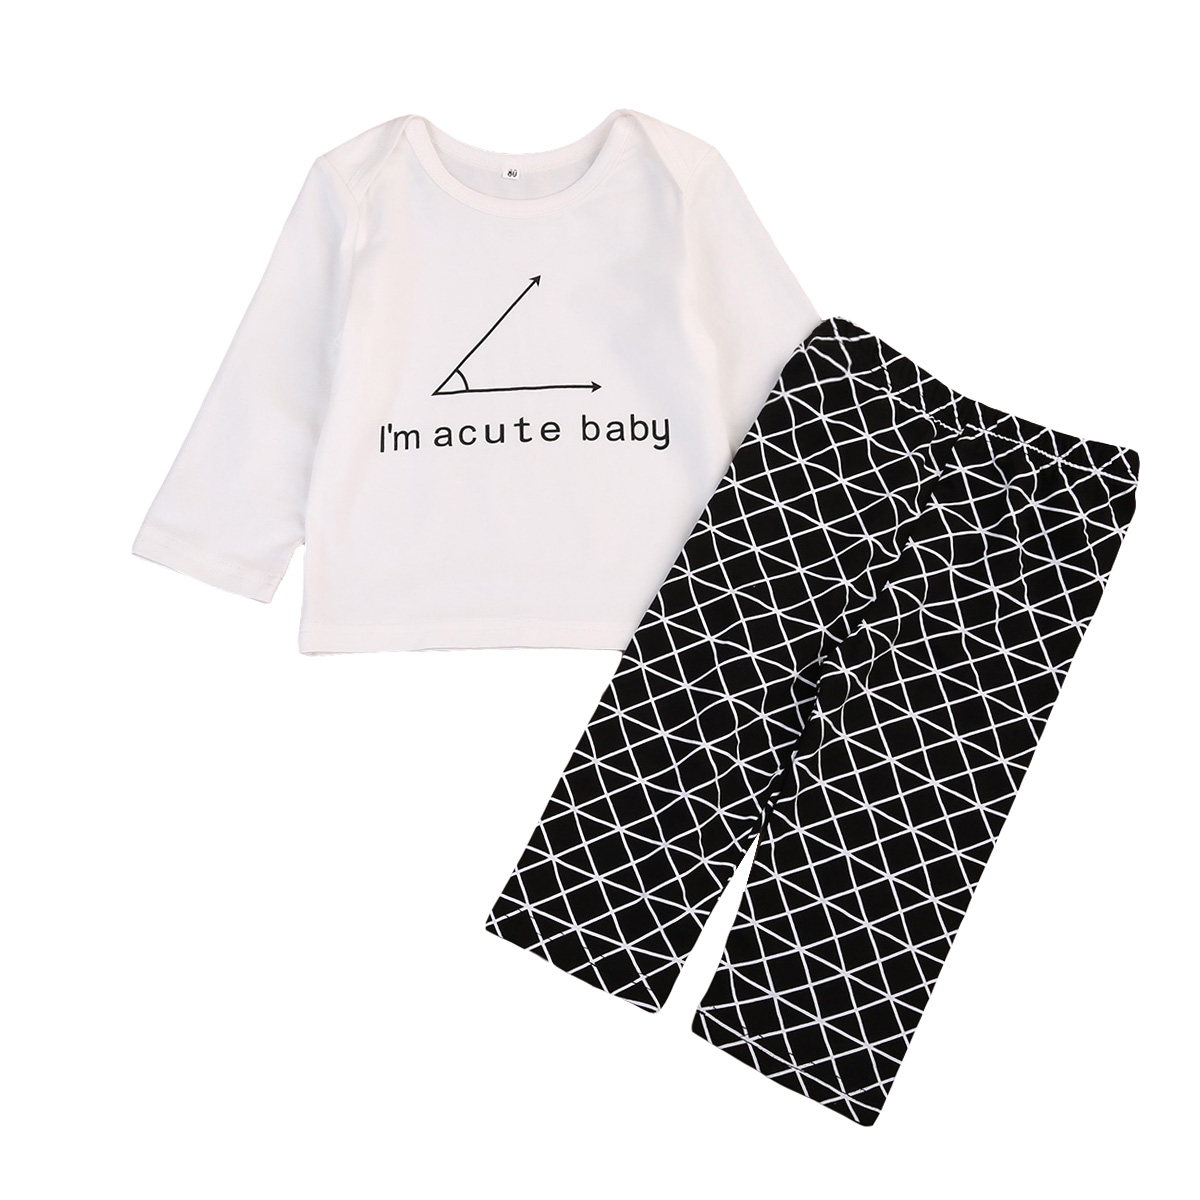 Cute Newborn Baby Boy Clothes Set 2017 New Long Sleeve Pullover T-shirt Tops+Geometric Pants 2pcs Outfits Clothes Set 2018 spring newborn baby boy clothes gentleman baby boy long sleeved plaid shirt vest pants boy outfits shirt pants set